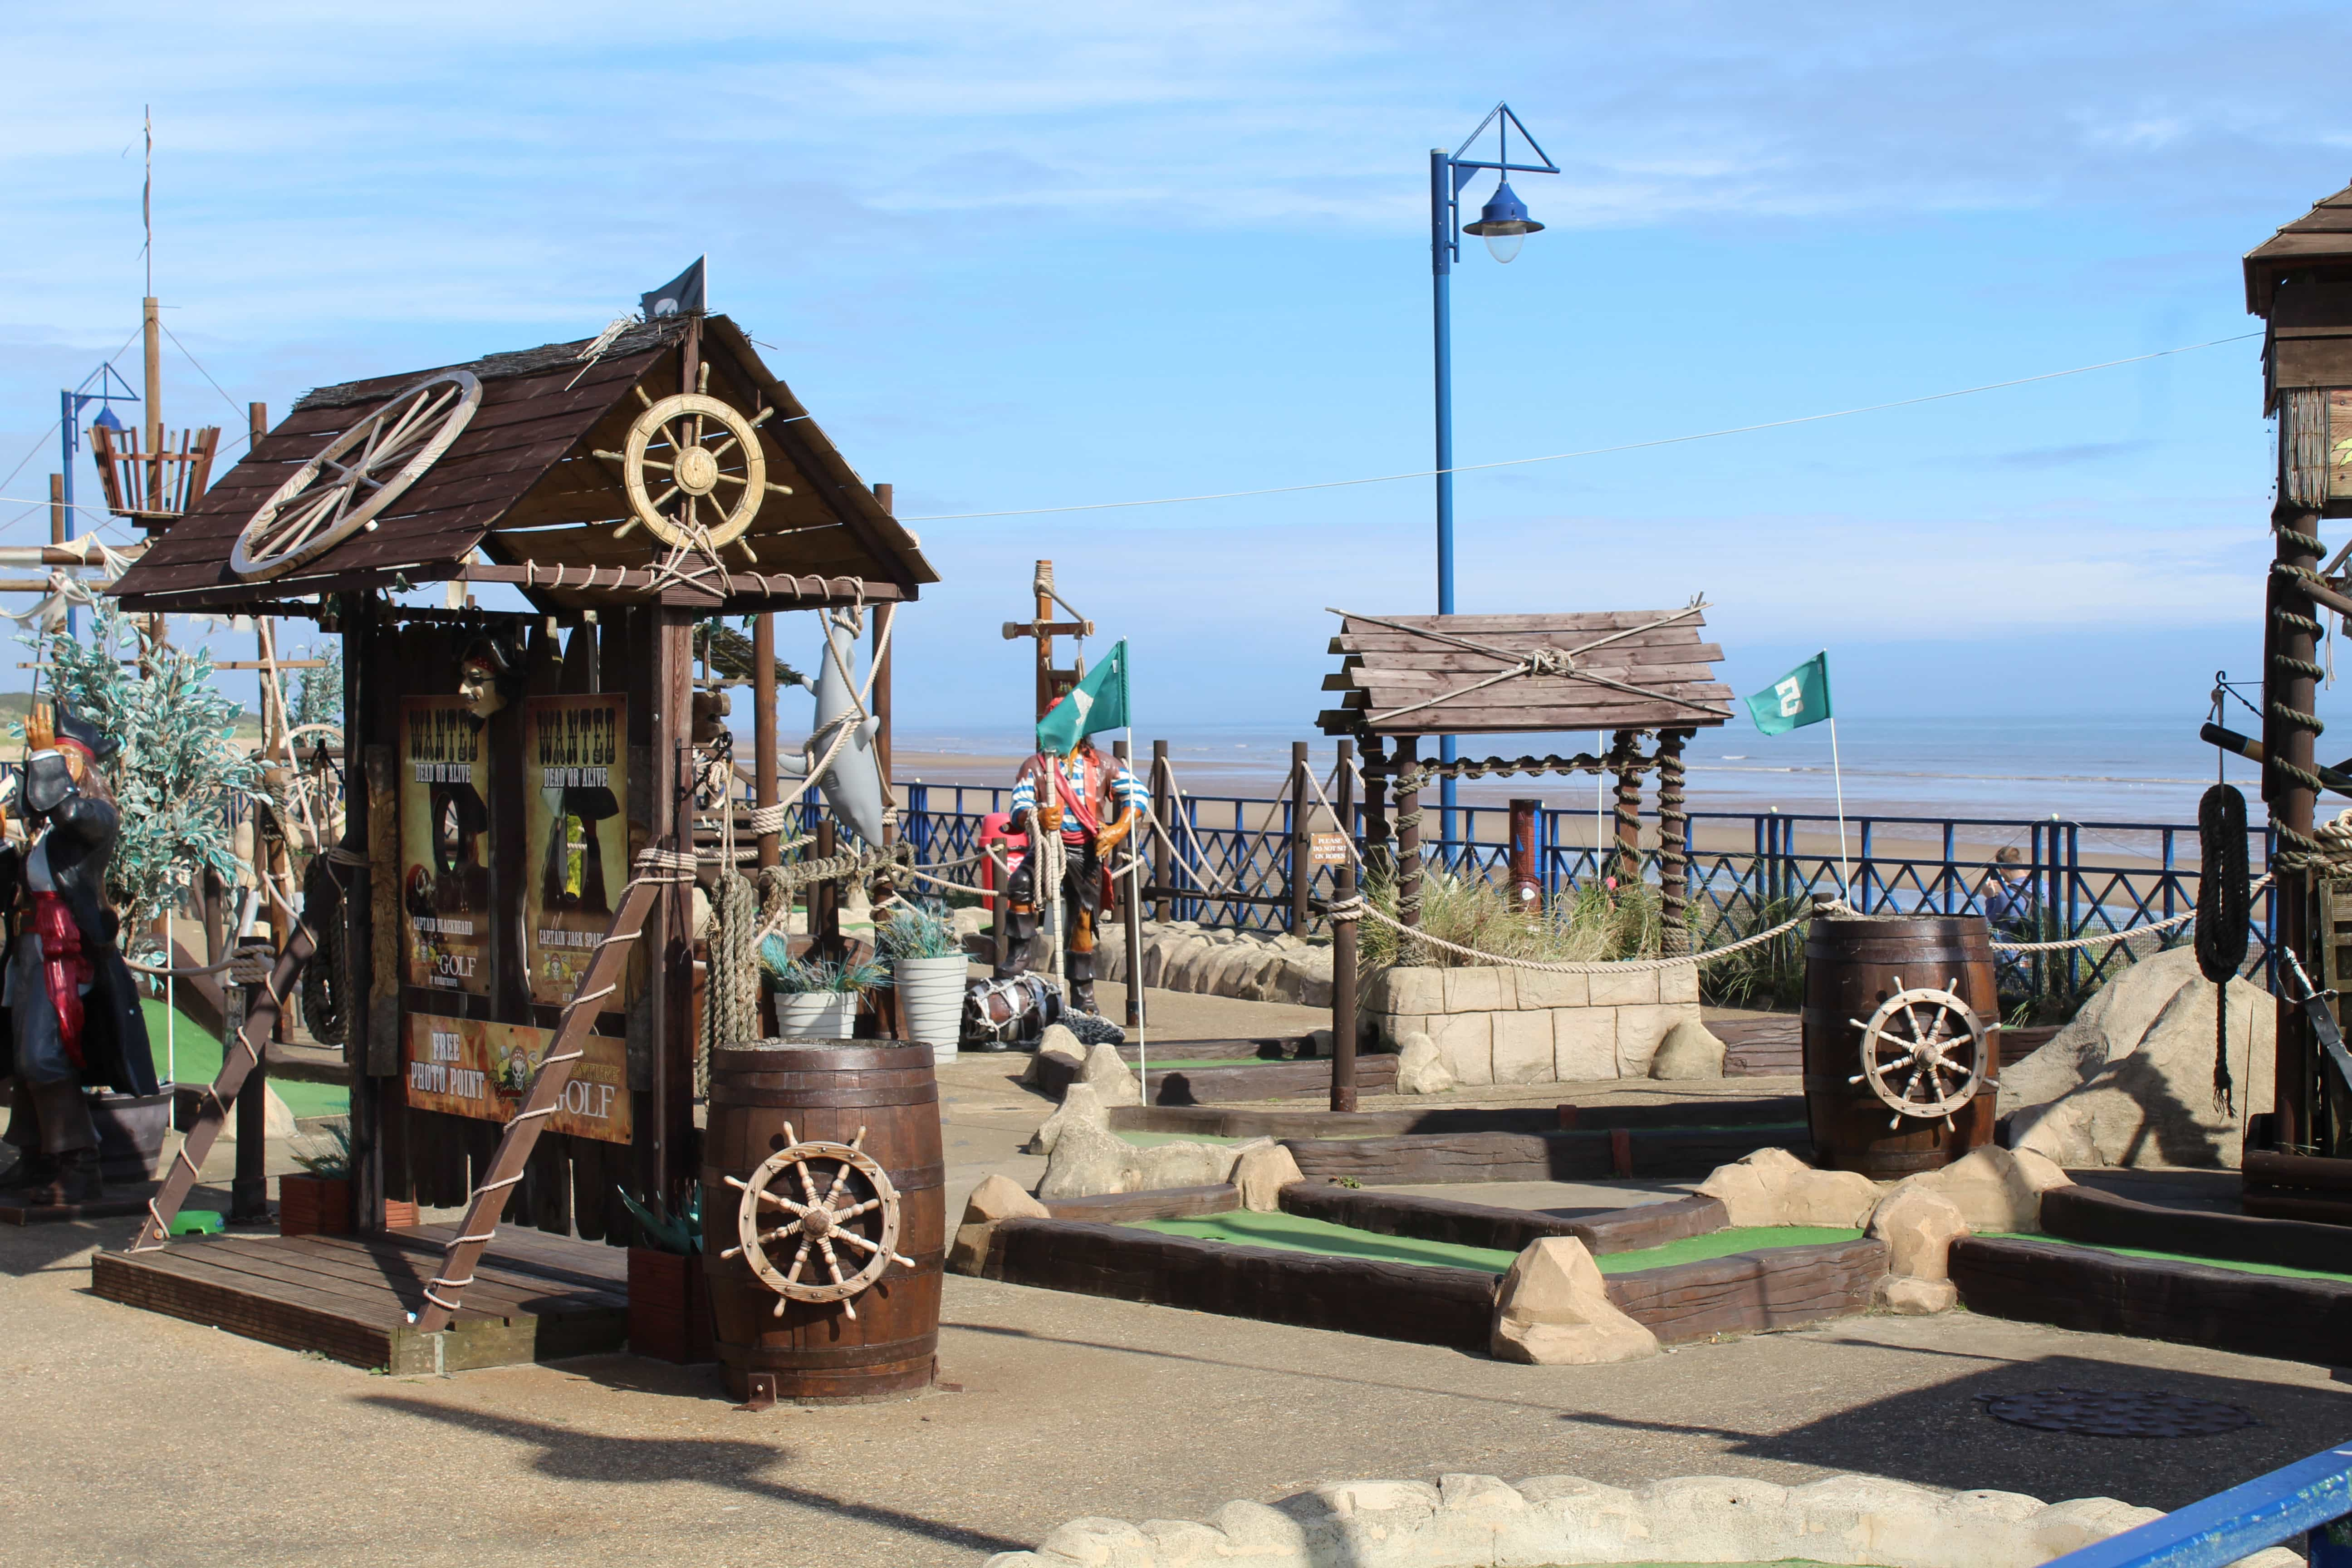 Mablethorpe Pirate Crazy Golf